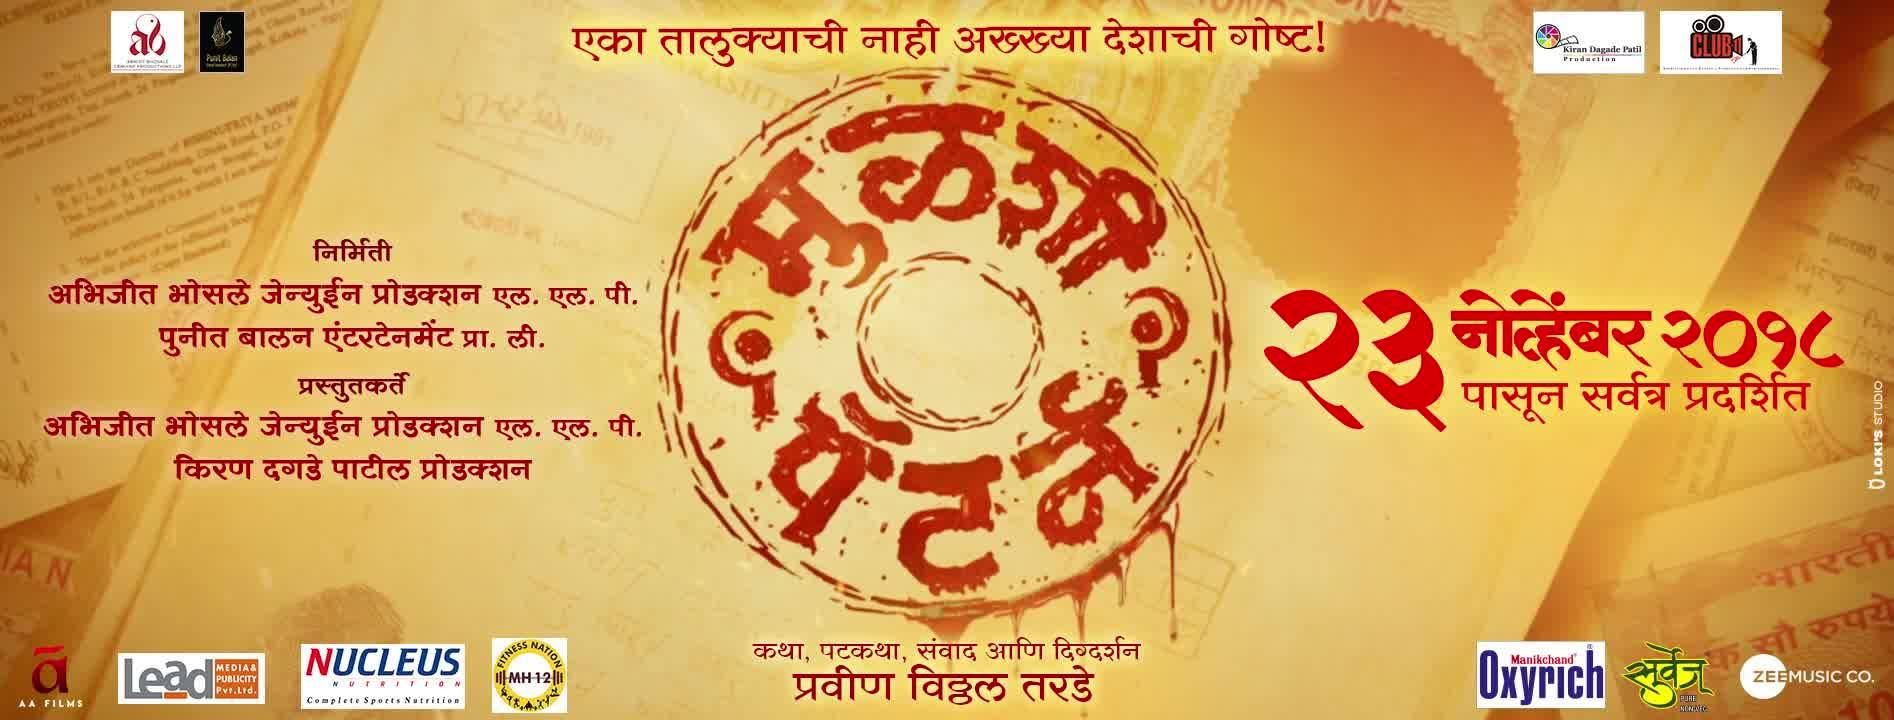 Mulshi Pattern Marathi Movie Cast Story Release Date Wiki Actress Actor Imdb Bookmyshow Review In 2020 Download Movies Download Free Movies Online Full Movies Download